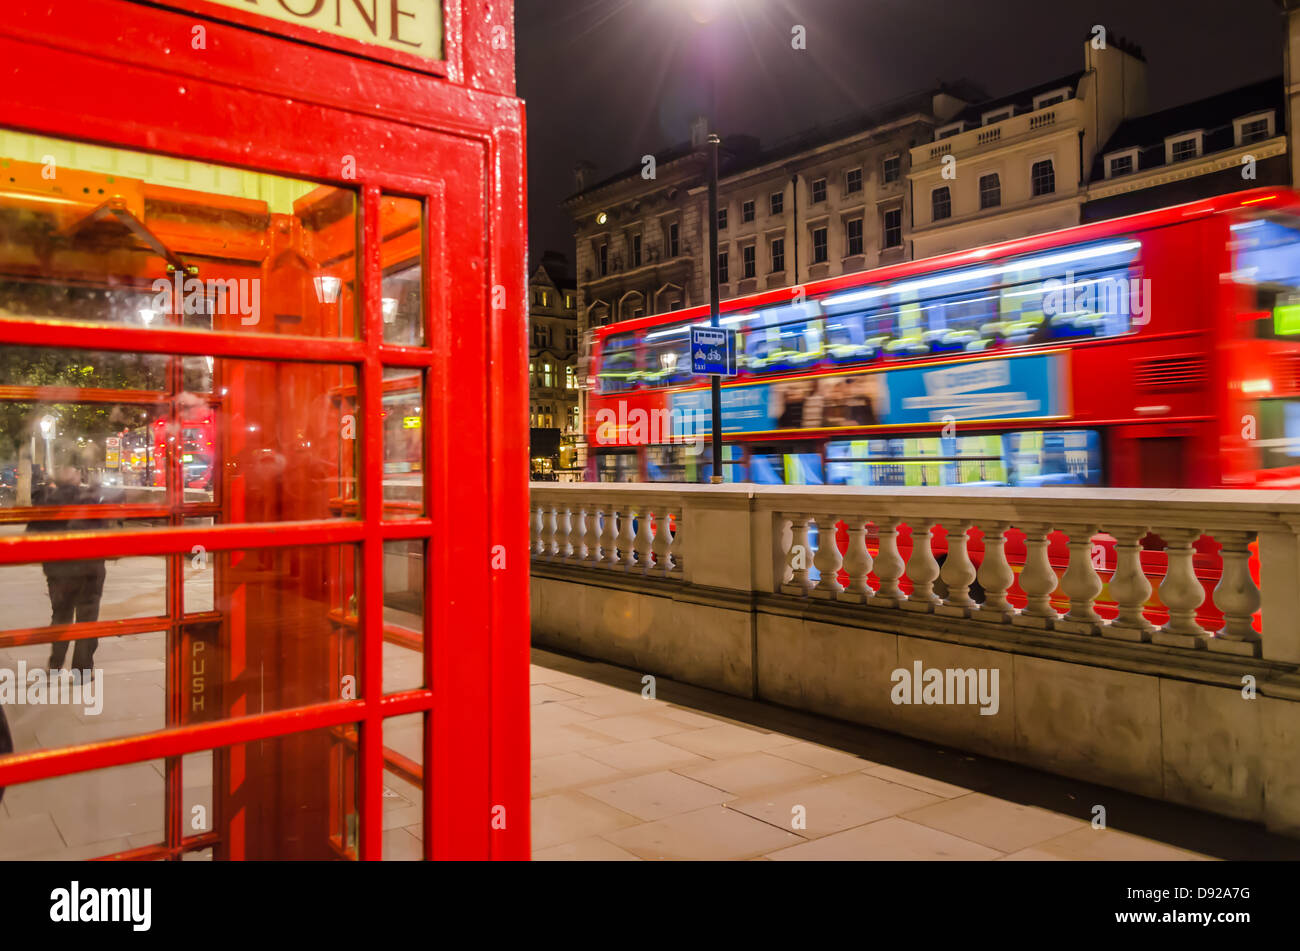 London Red Telephone Box and bus. London, England. - Stock Image